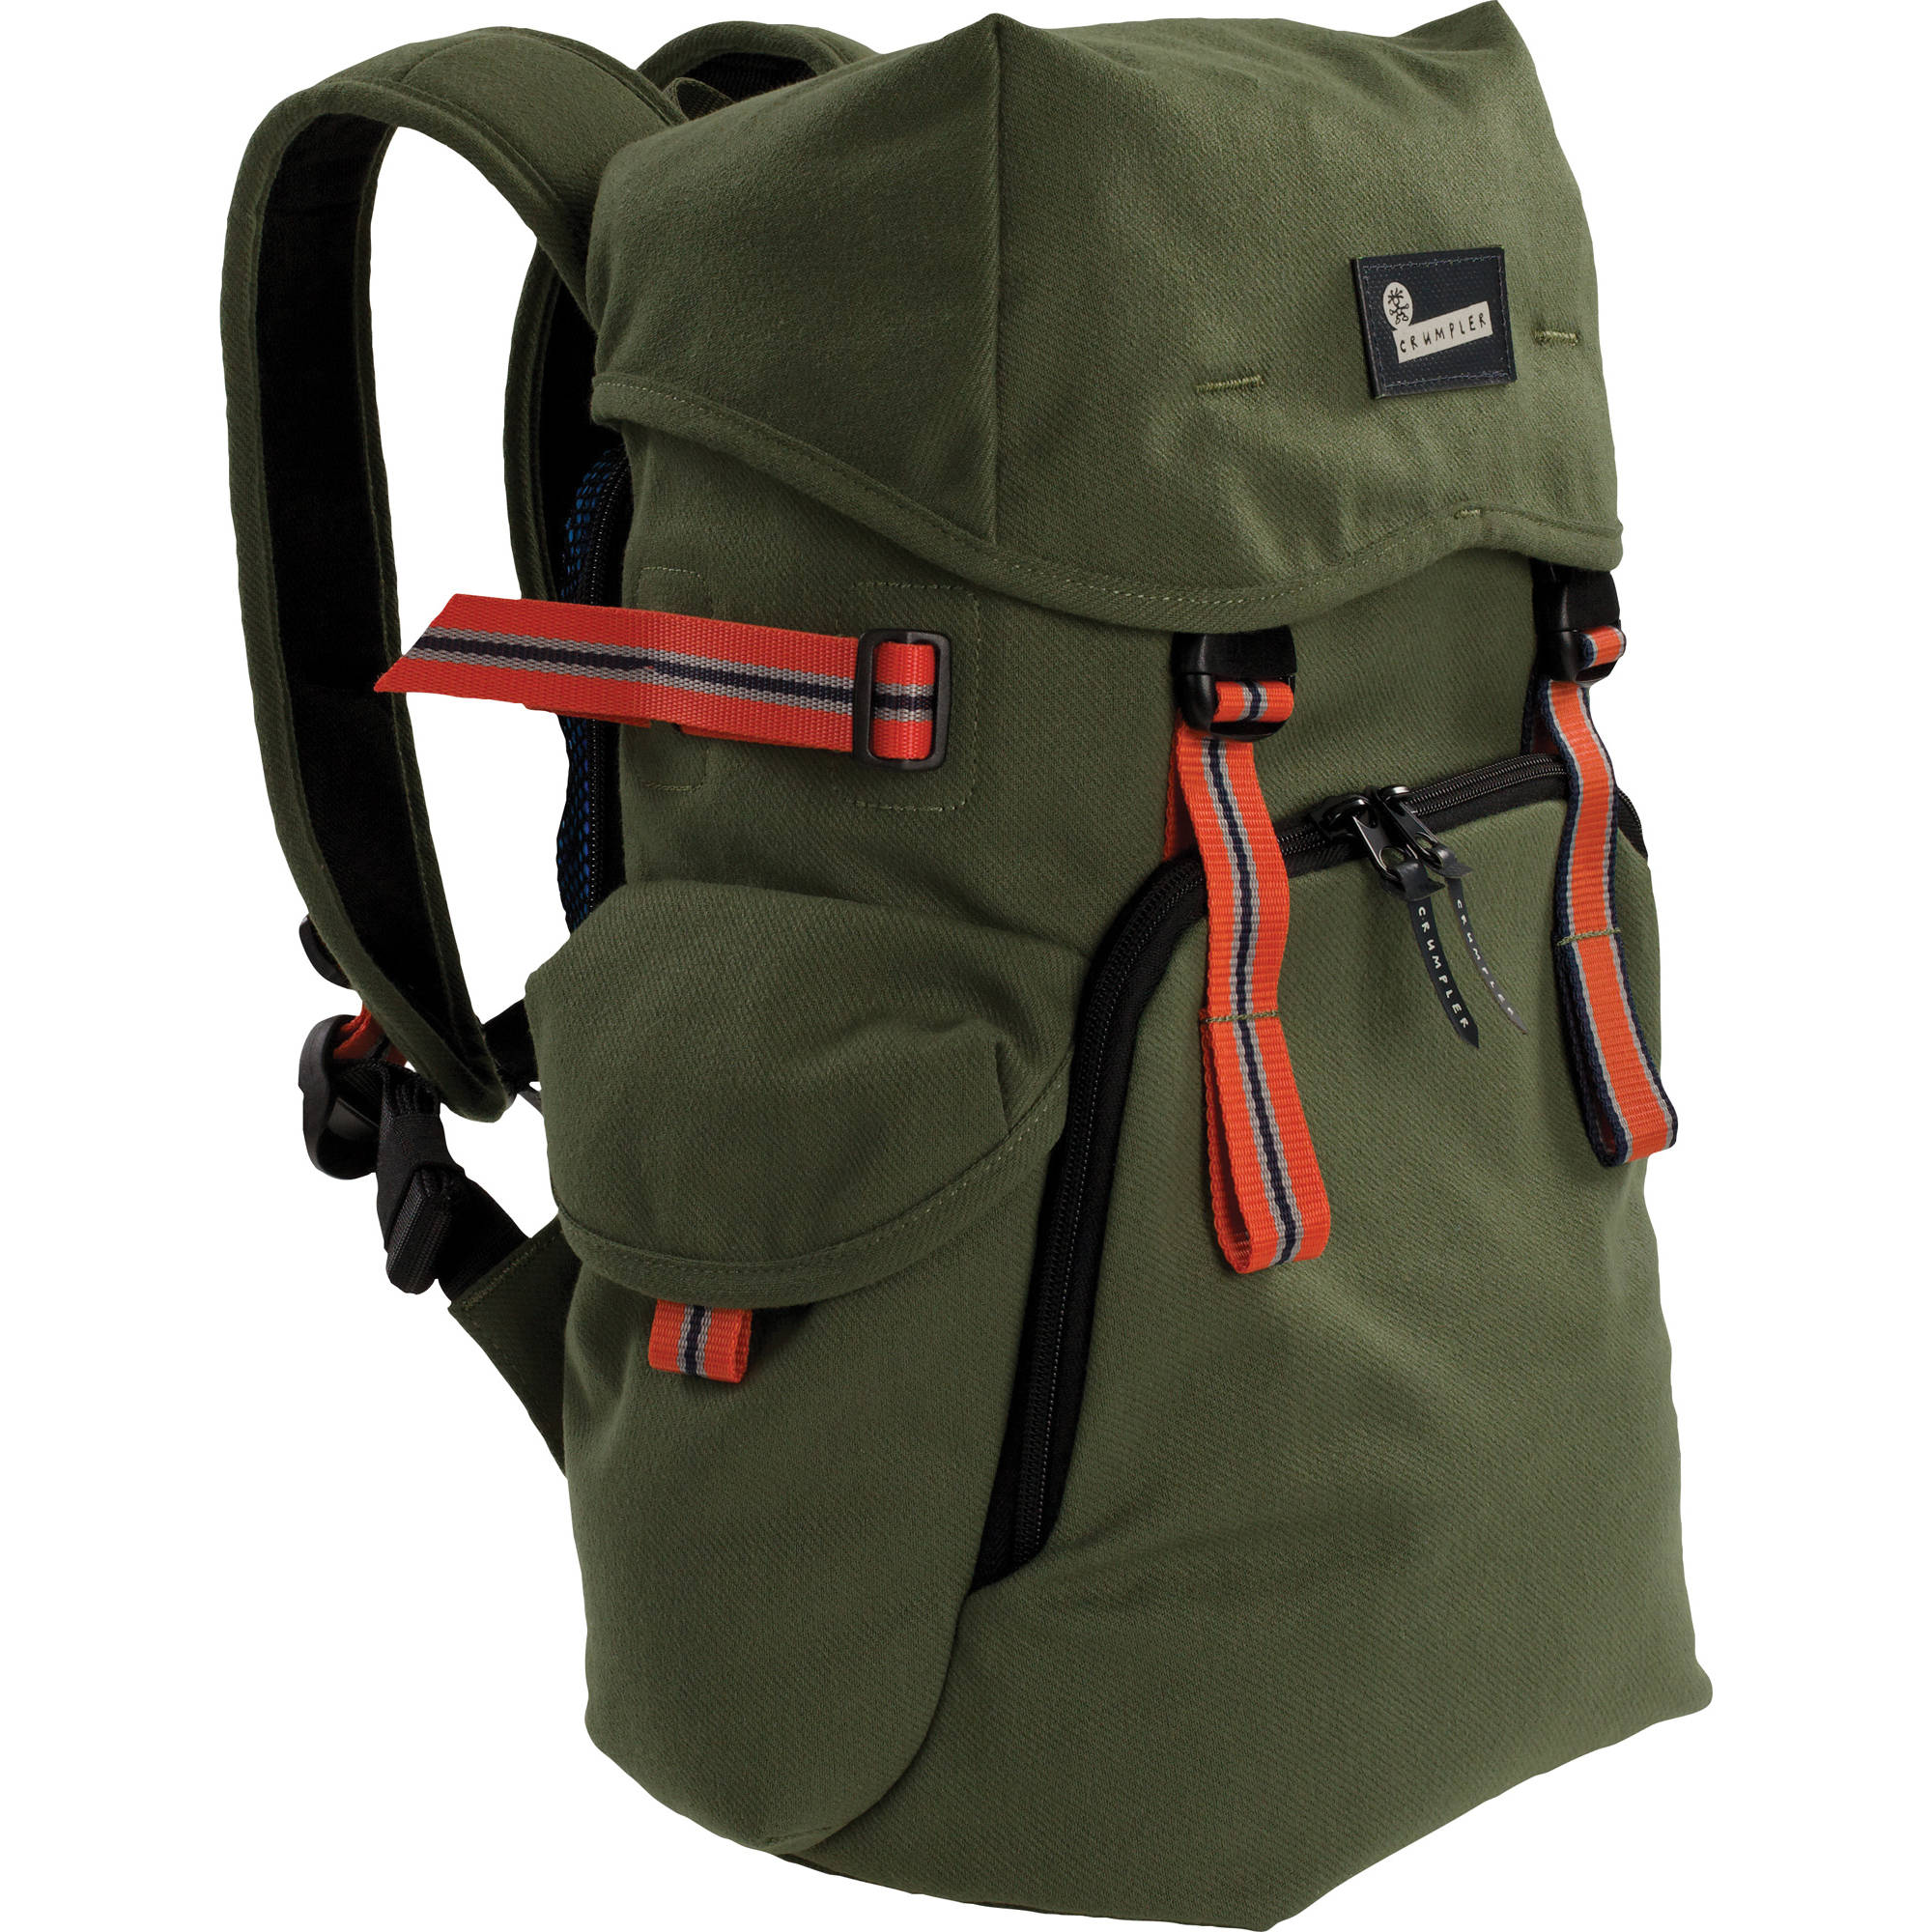 Crumpler Backpacks & Laptop Cases | B&H Photo Video